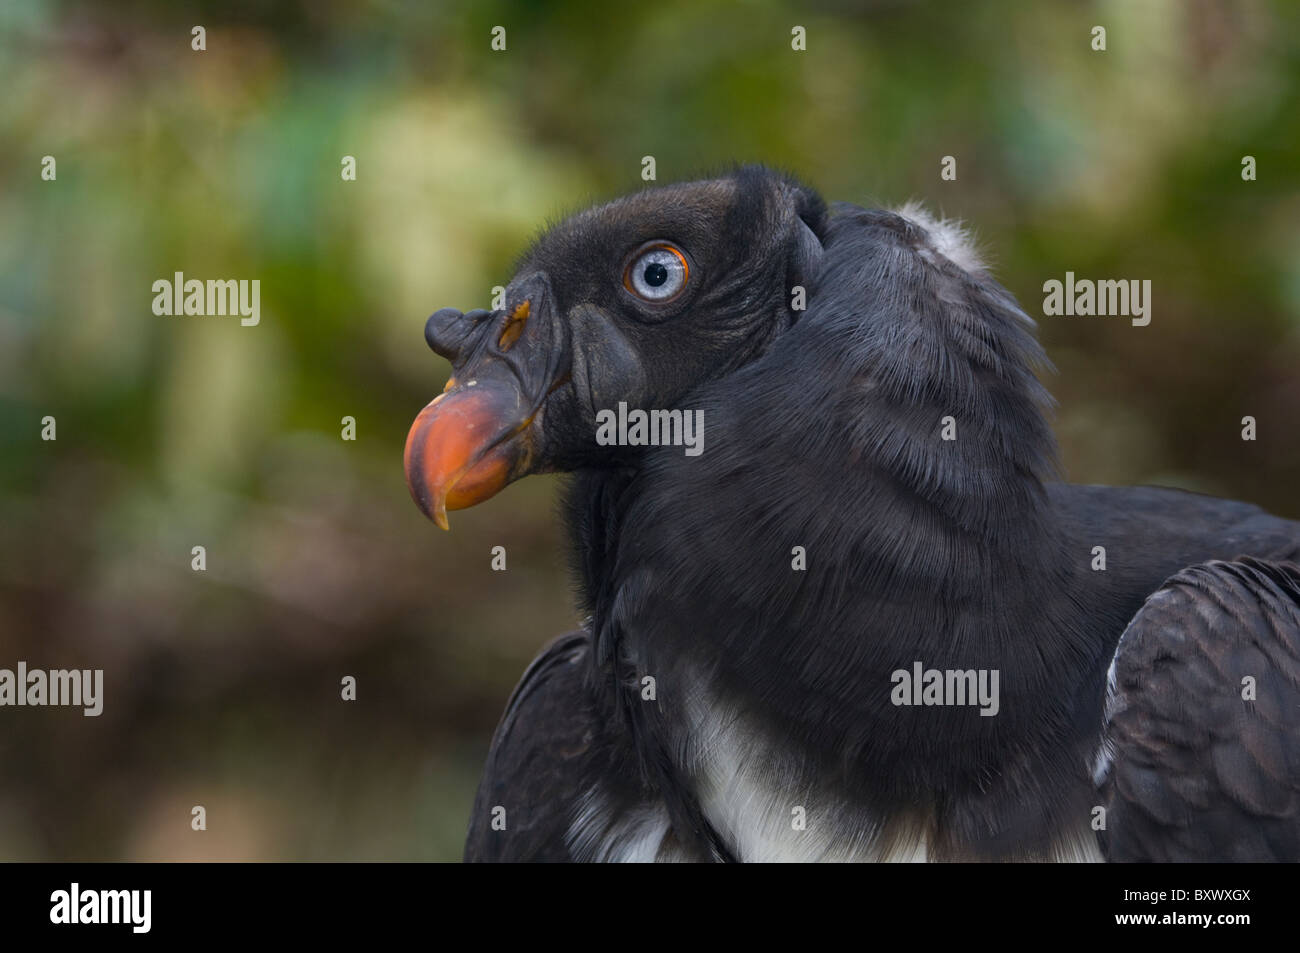 King Vulture (Sarcoramphus papa), World of Birds, Cape Town, South Africa - Stock Image